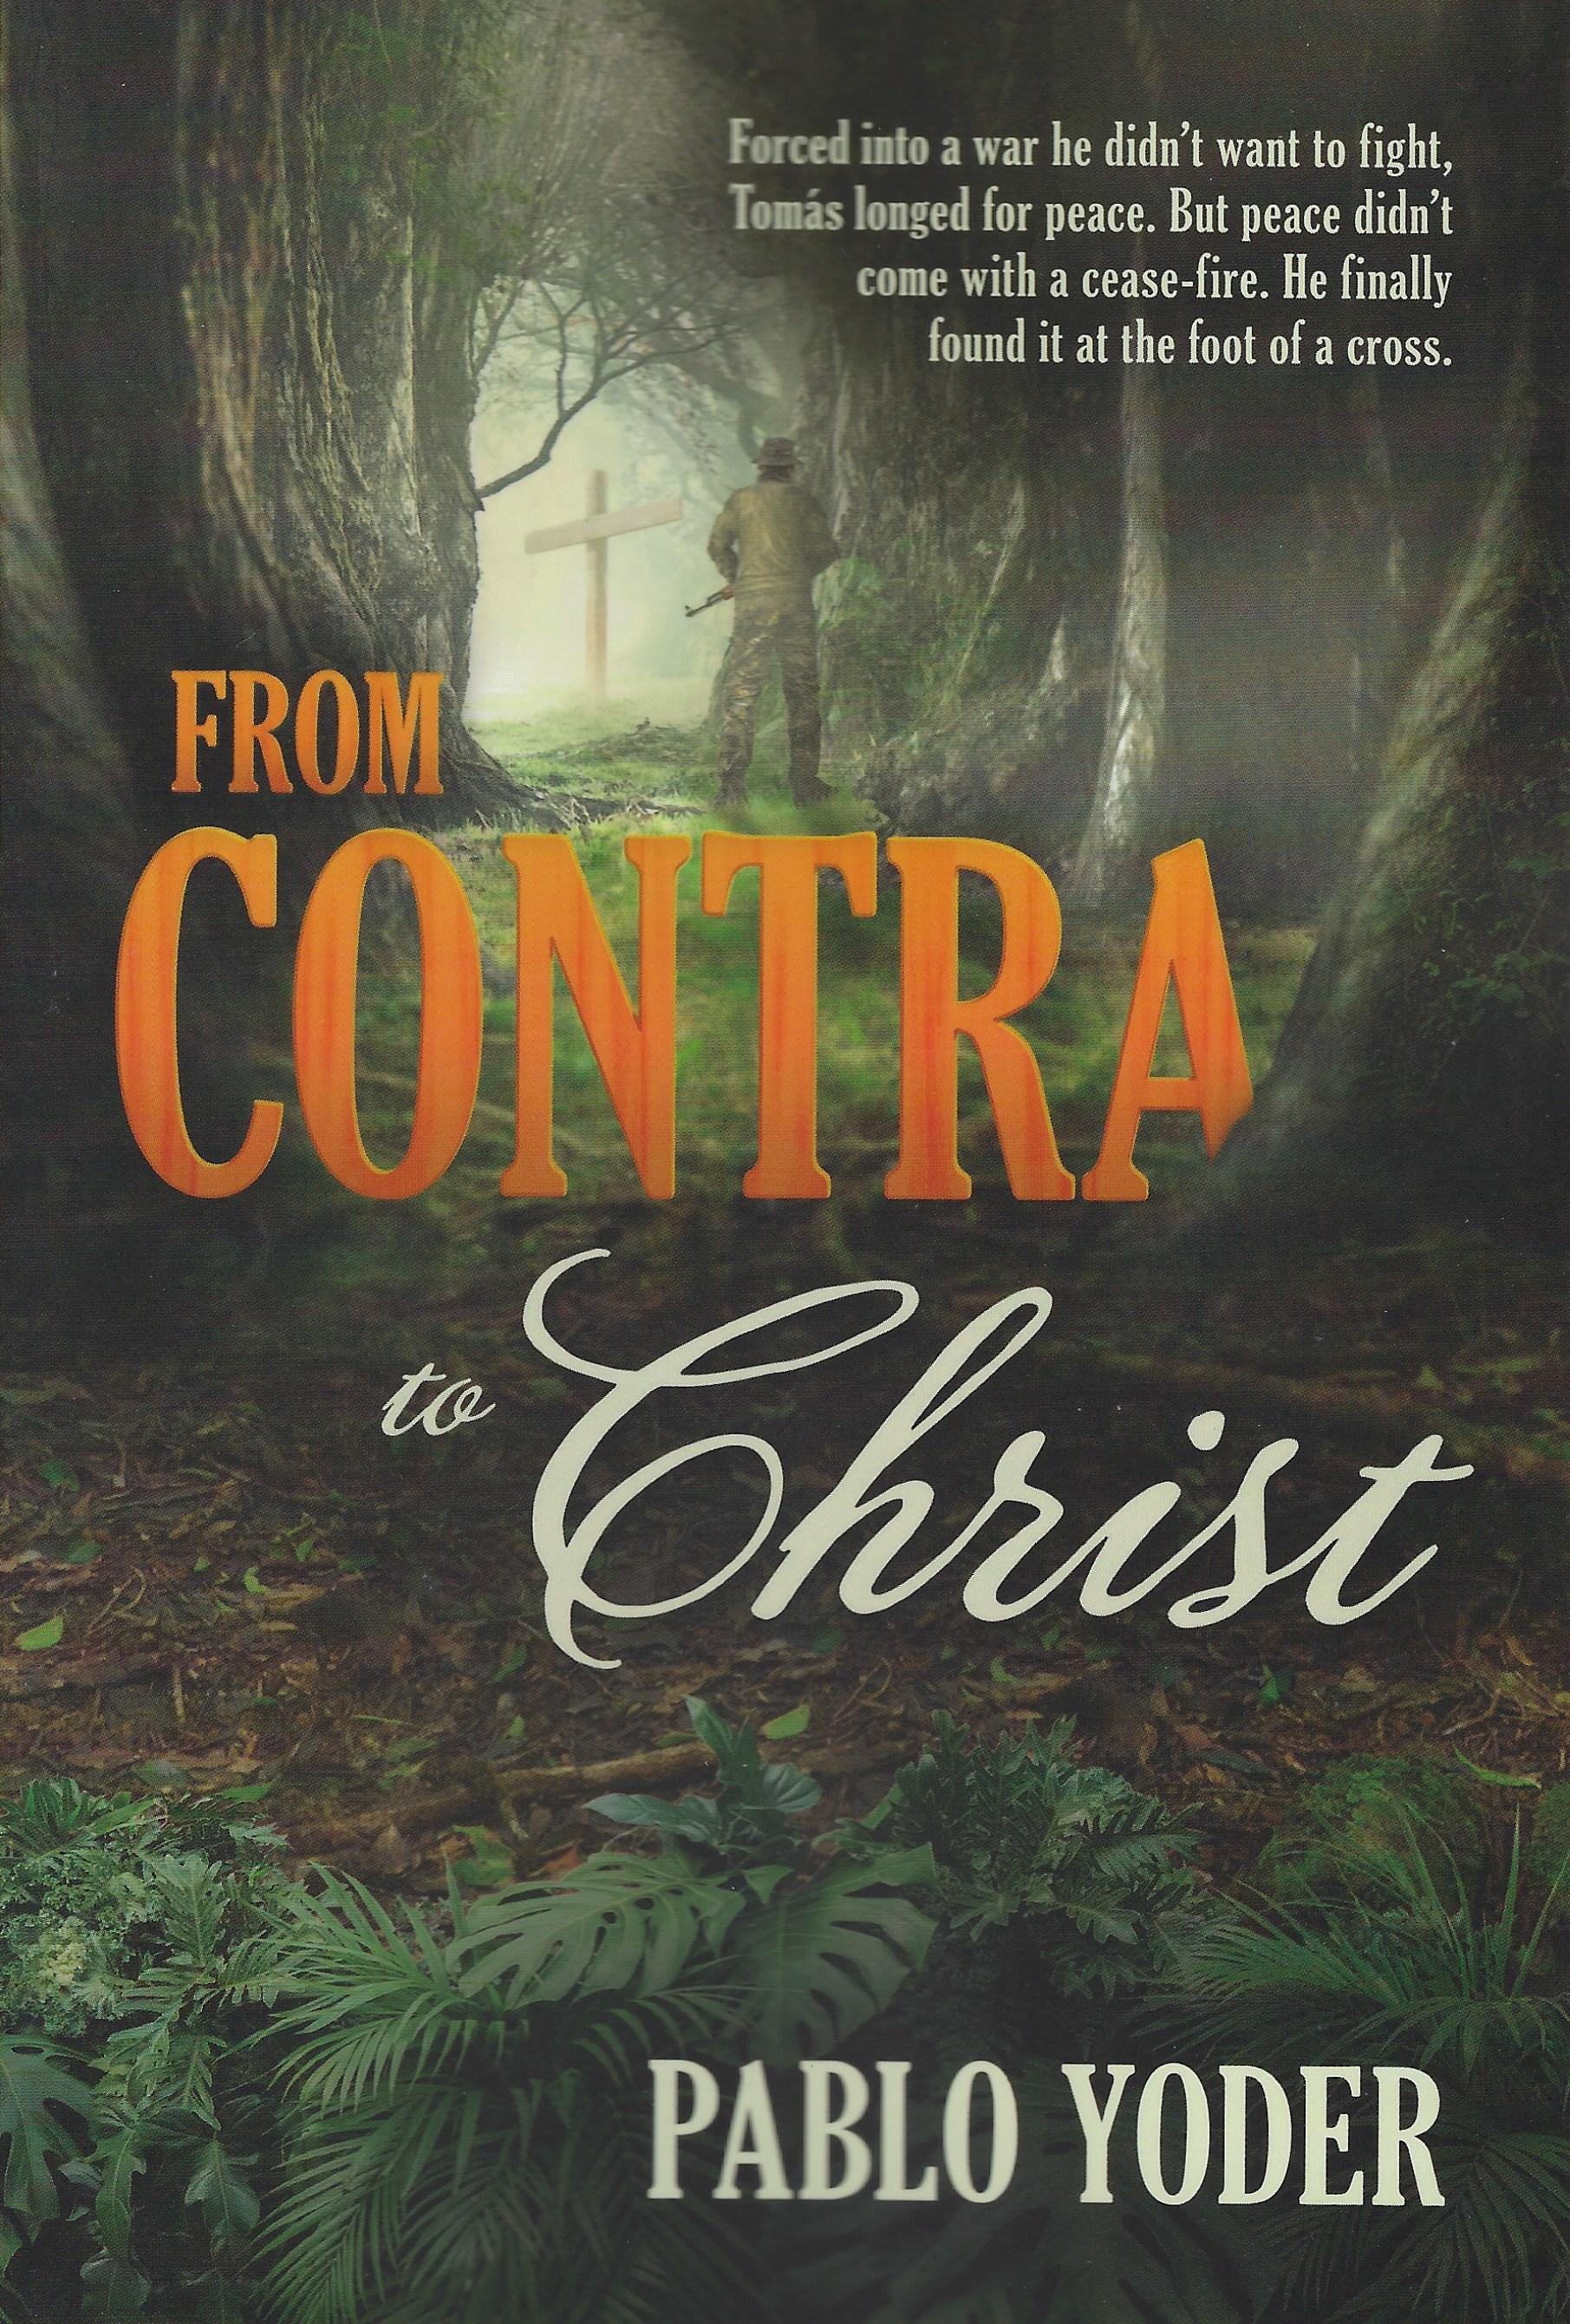 FROM CONTRA TO CHRIST Pablo Yoder